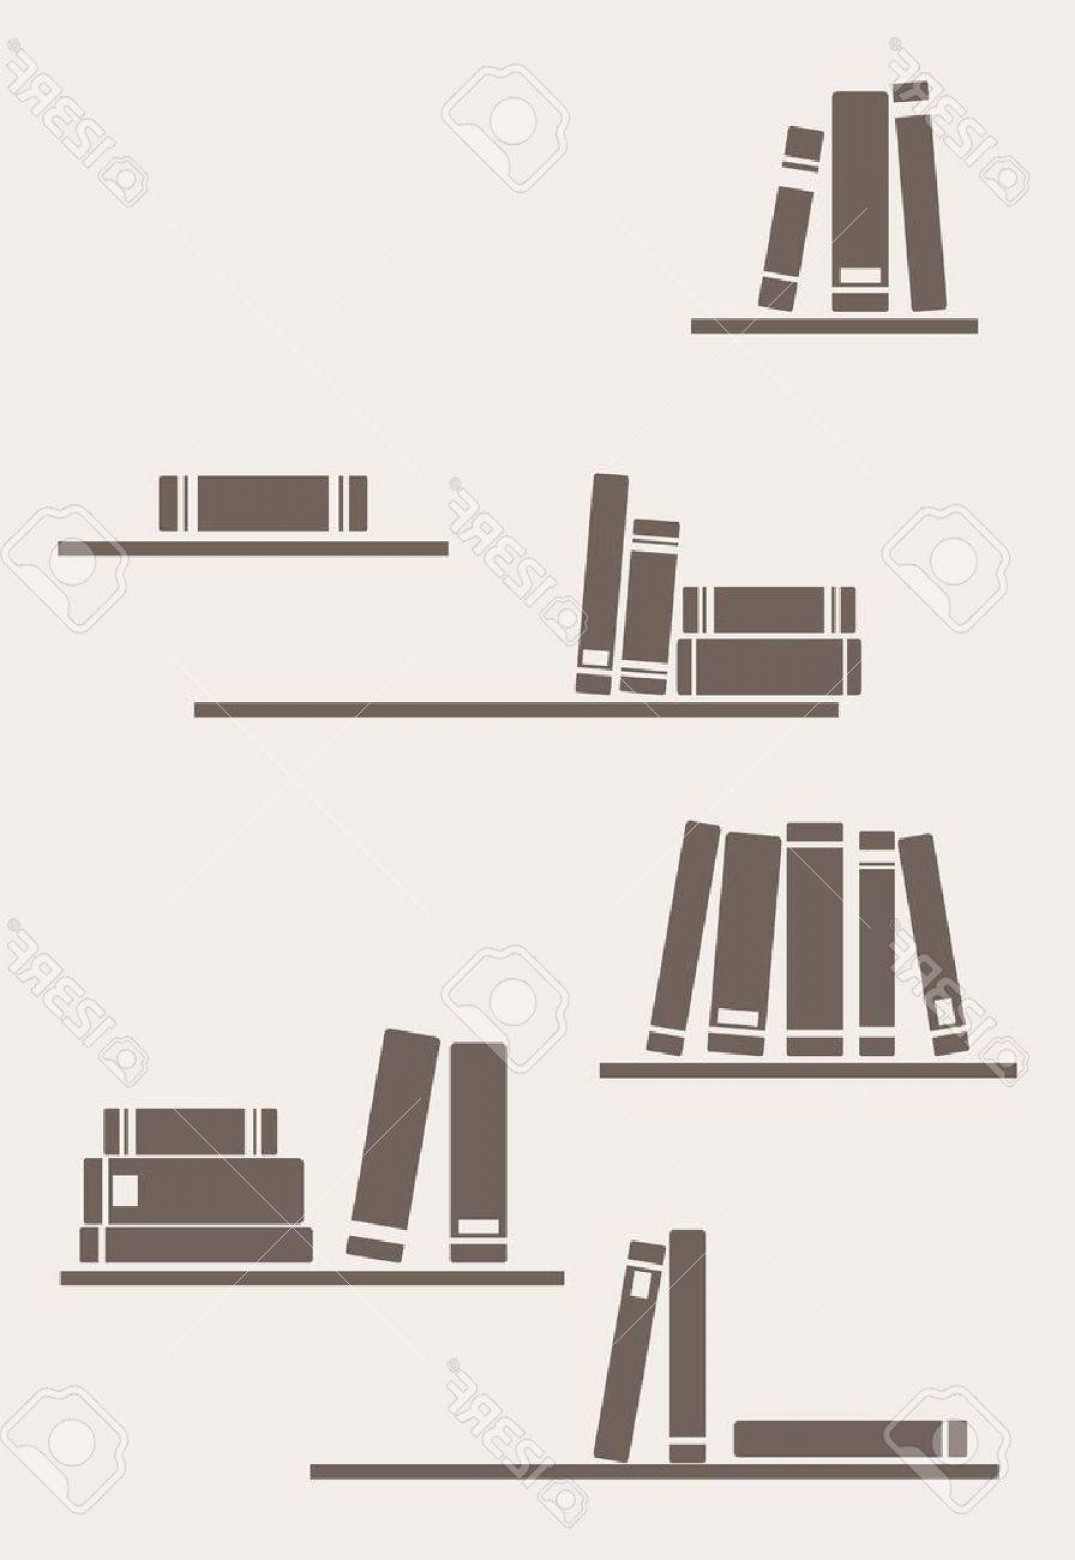 Vector Vintage Shelf: Photobooks On The Shelves Simply Retro Illustration Vintage Objects For Decorations Background Textures O